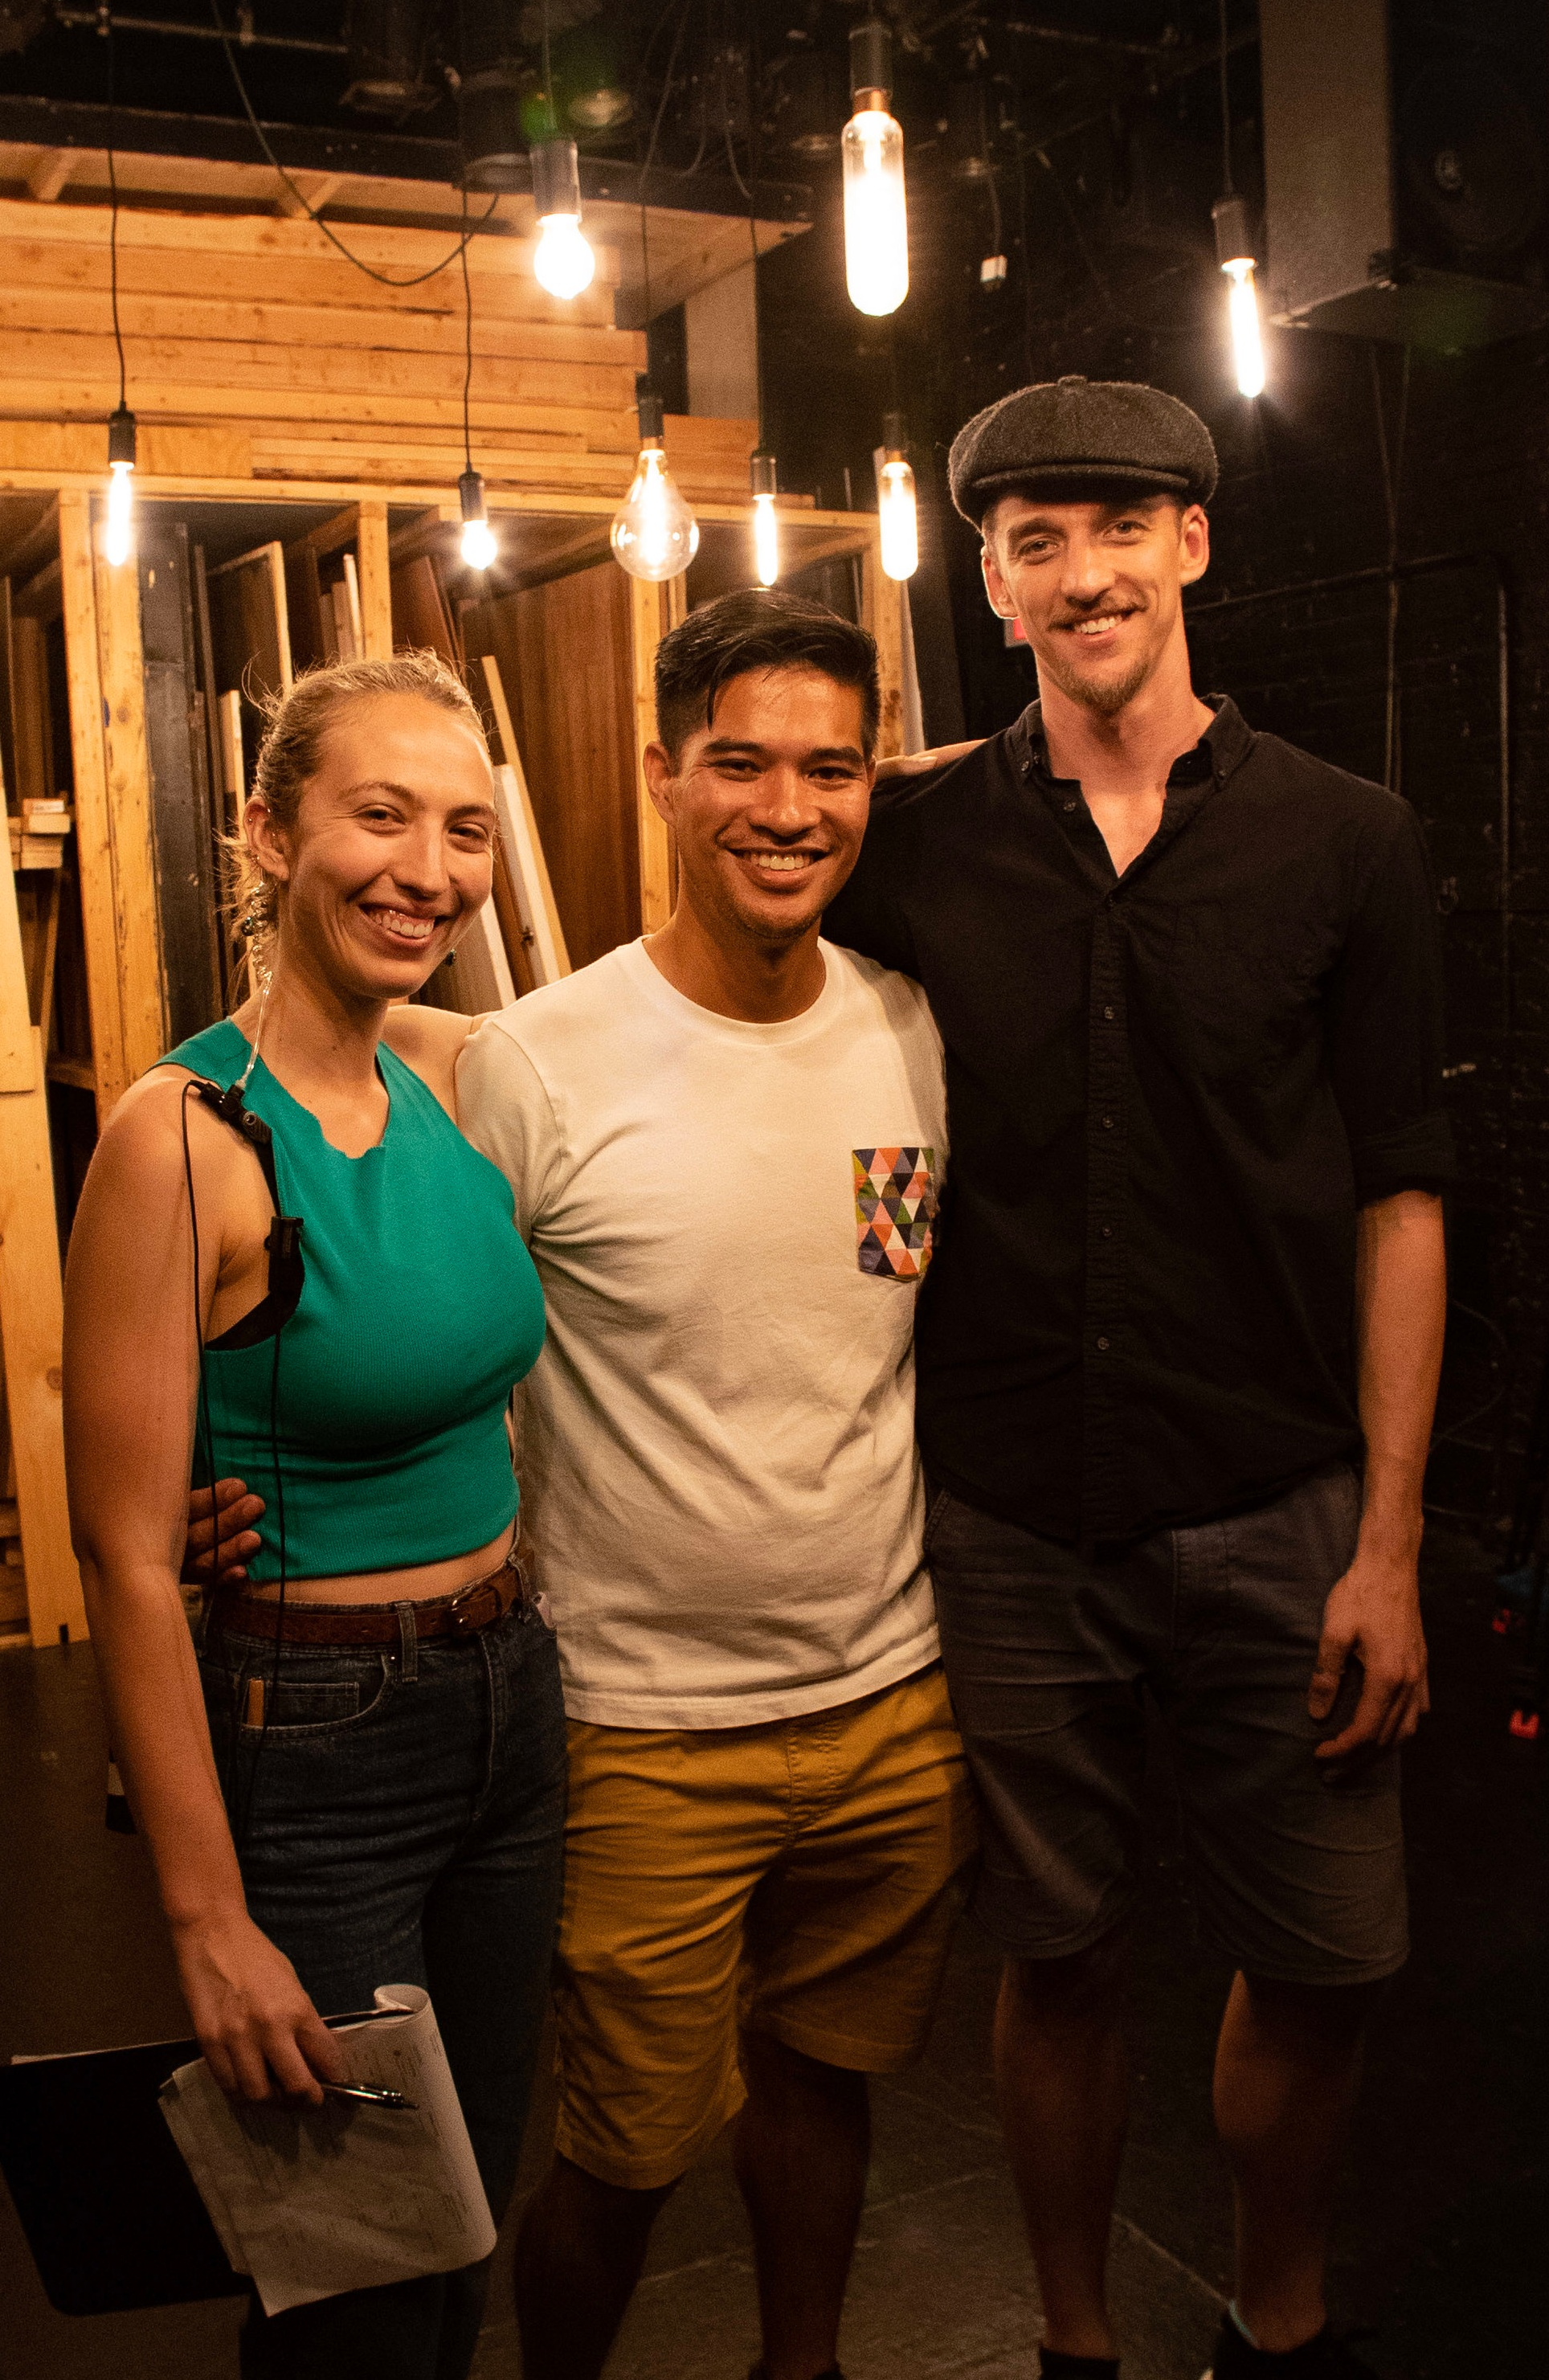 Clea DeCrane, Phillip Nguyen & Brendan Swift on set of their latest project.